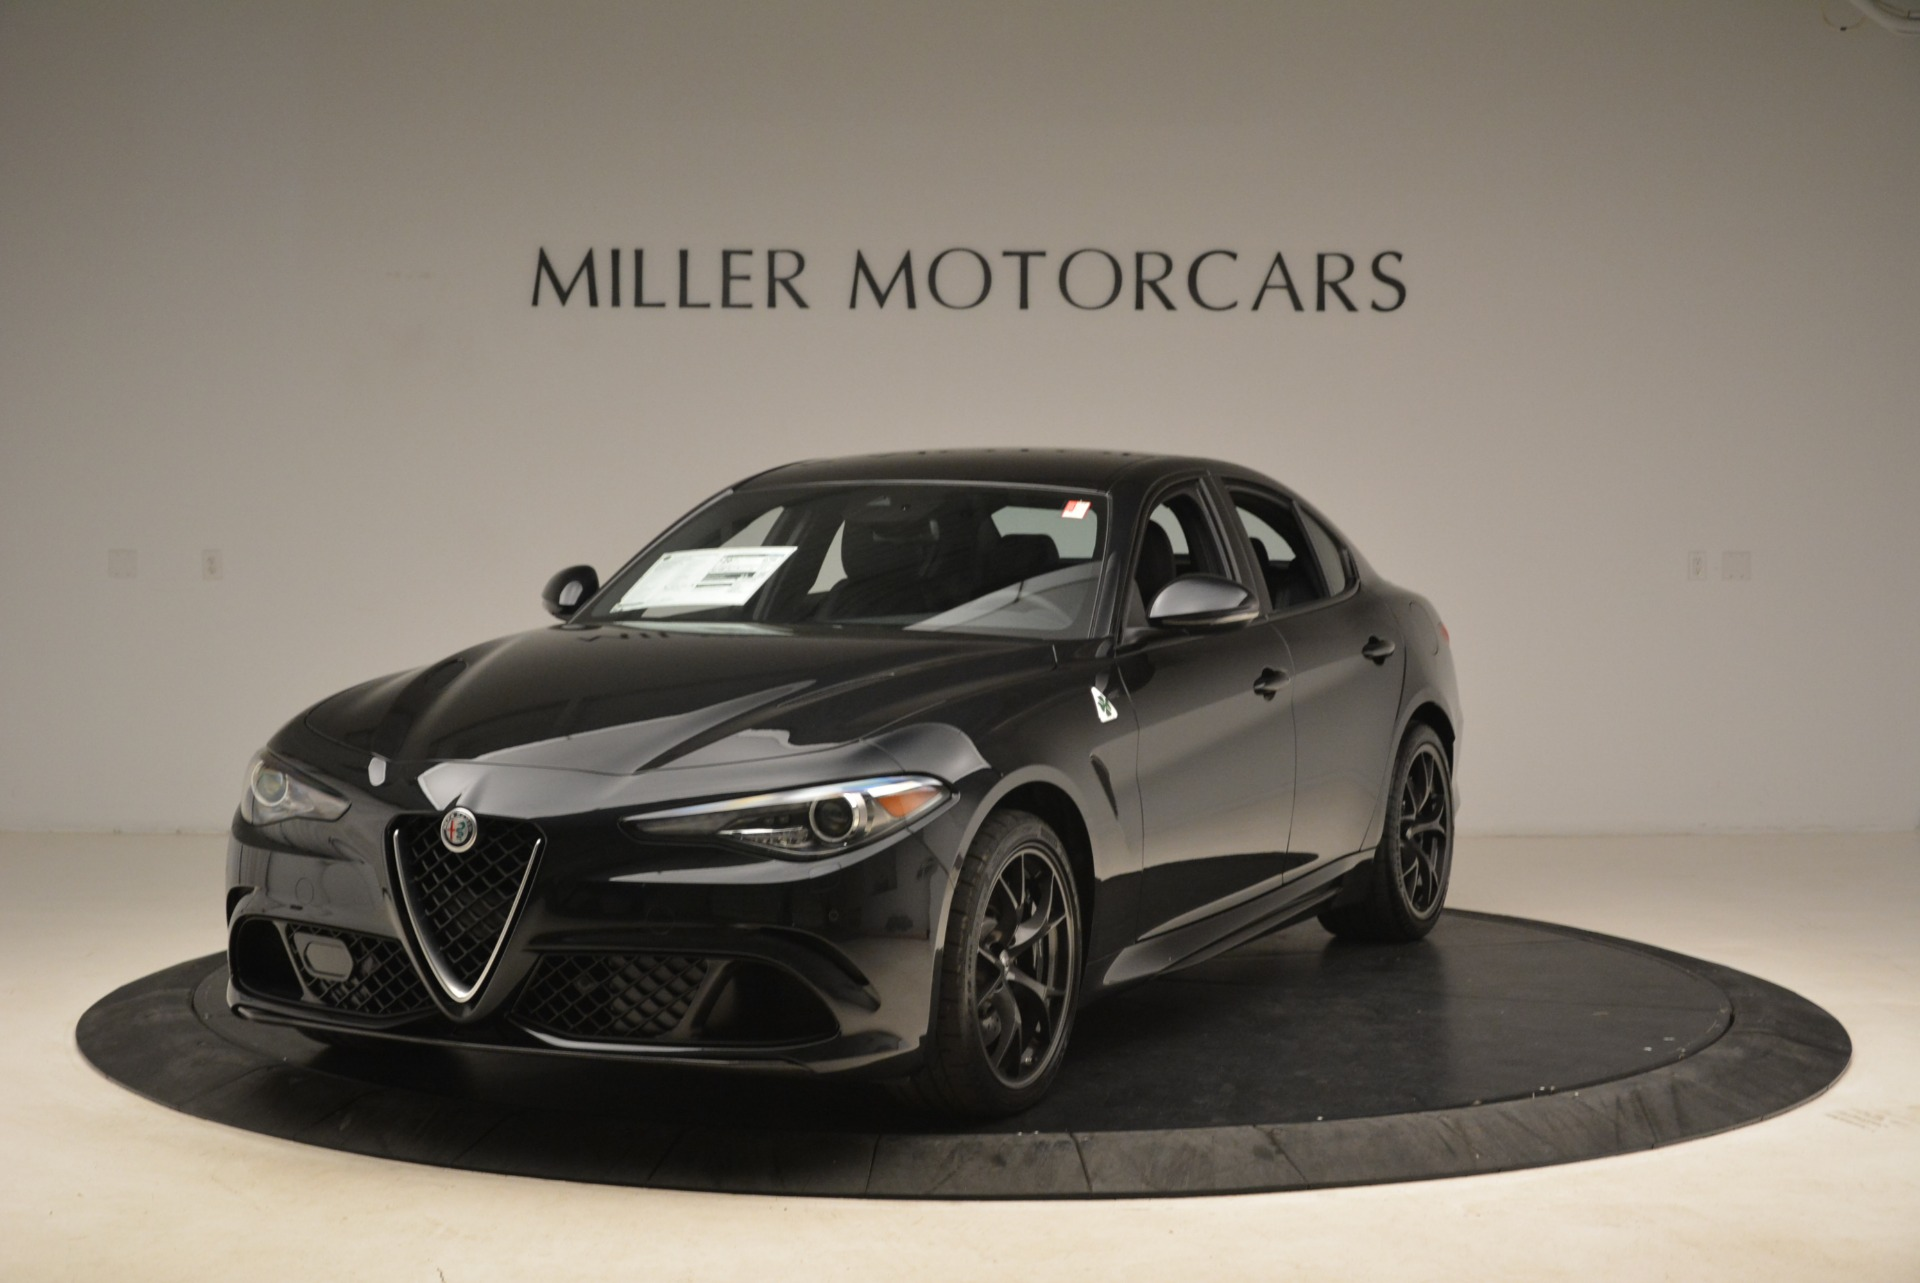 2018 alfa romeo giulia quadrifoglio stock # l348 for sale near